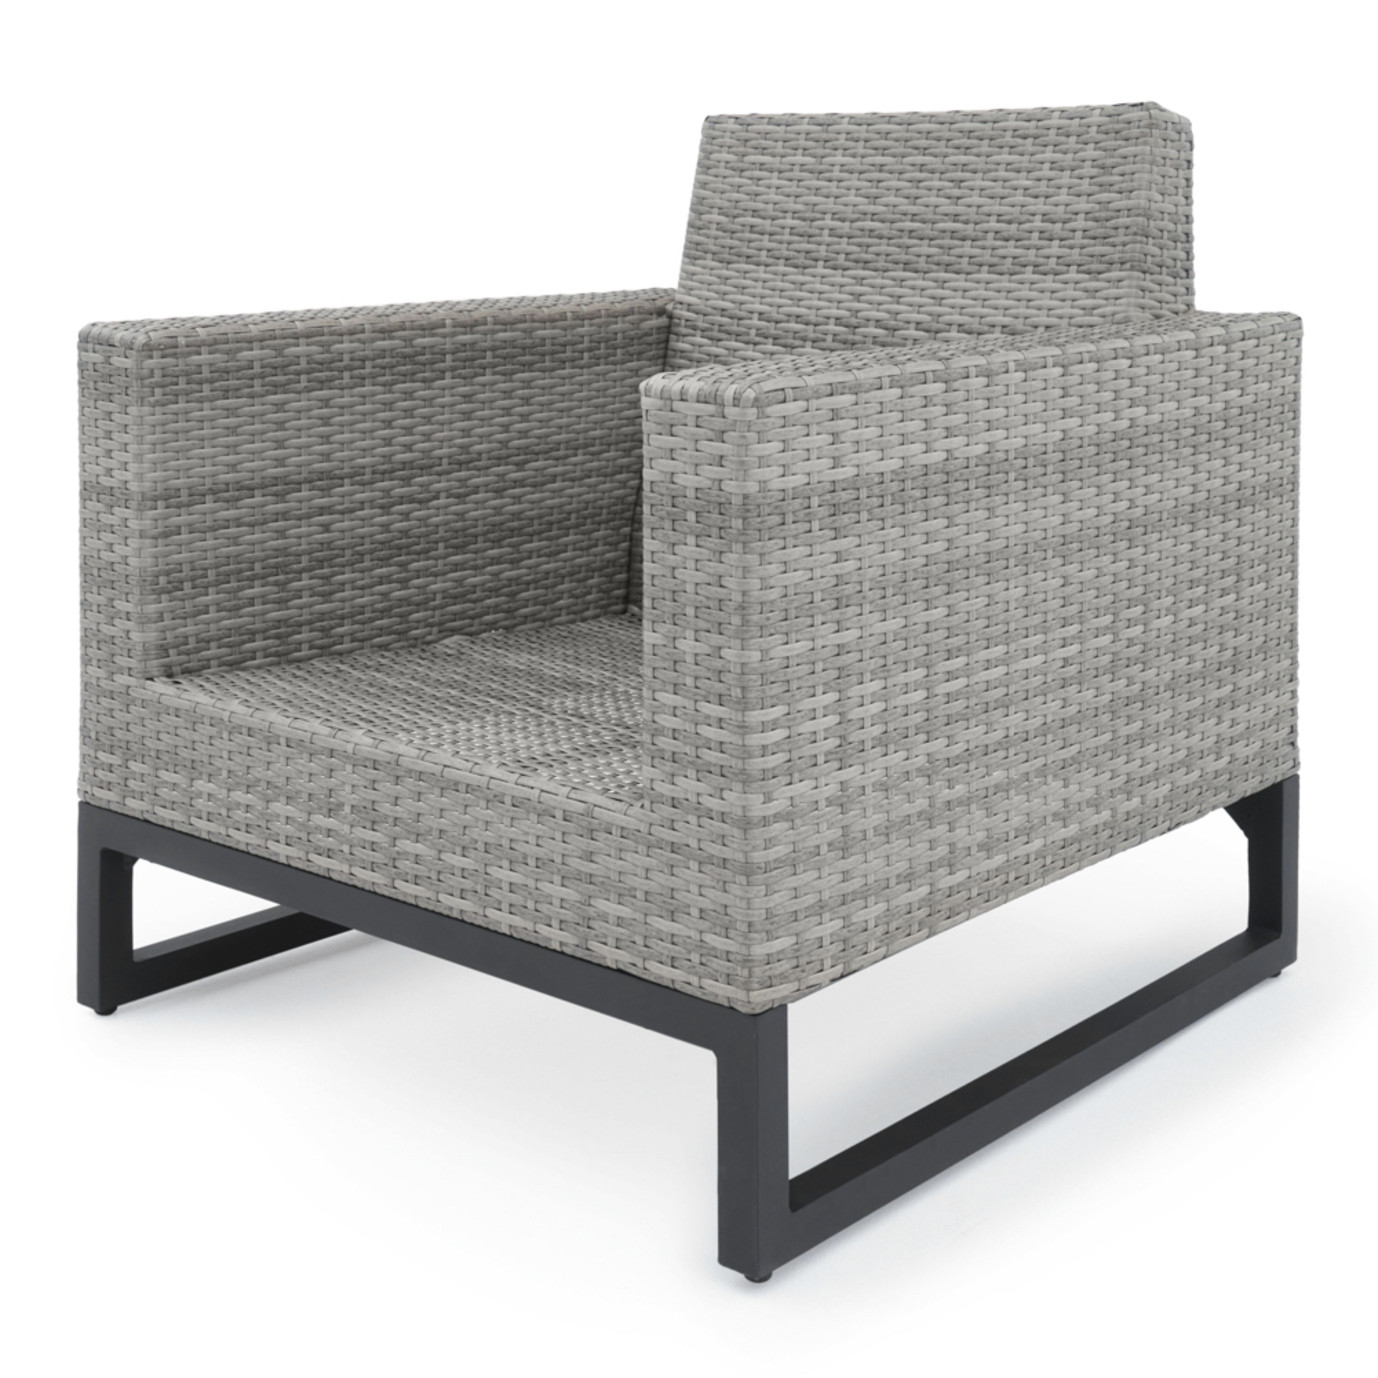 Milo™ Gray 4 Piece Seating Set - Navy Blue